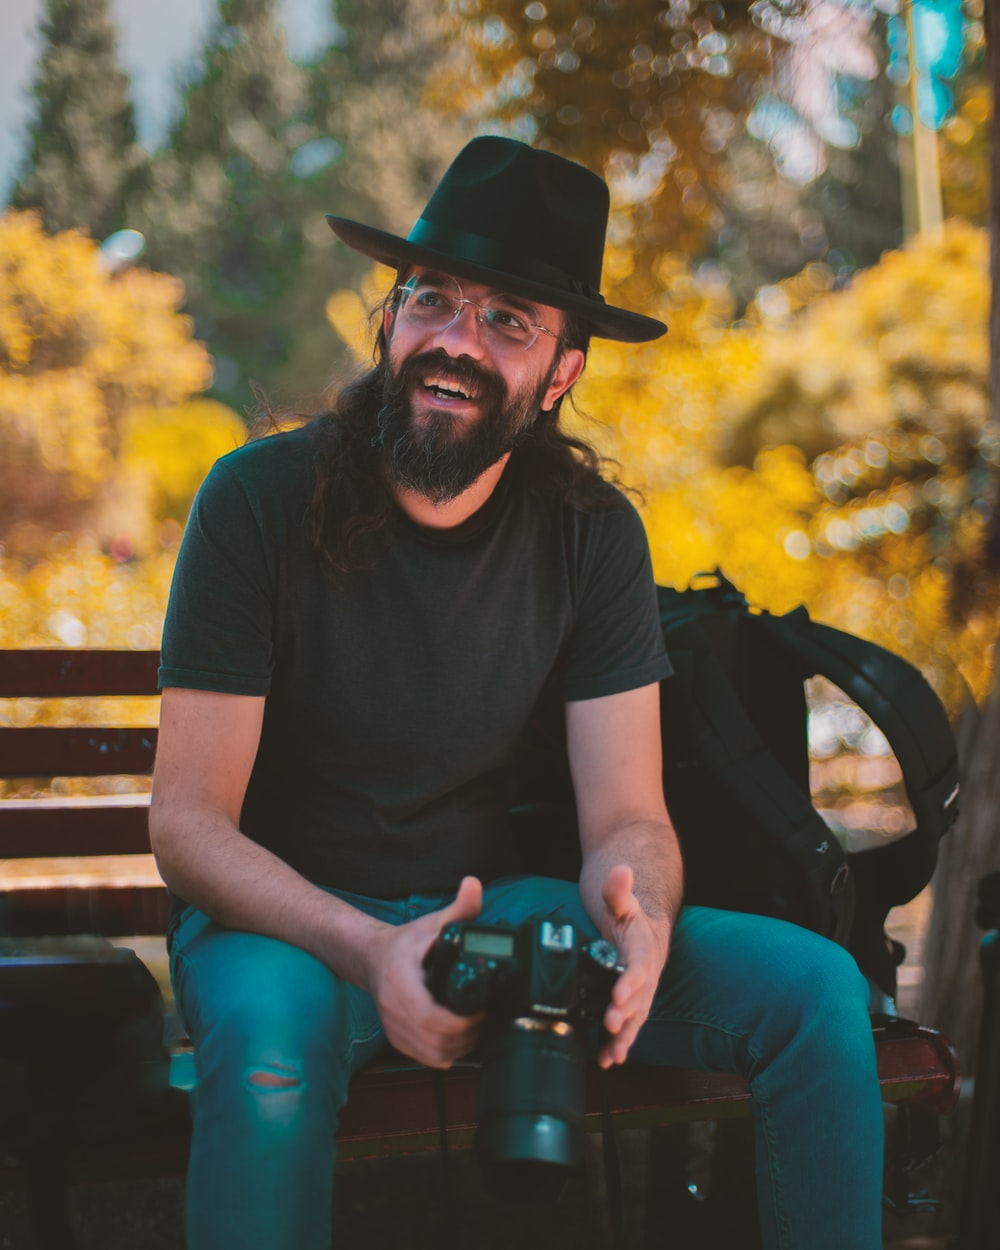 smiling man holding camera